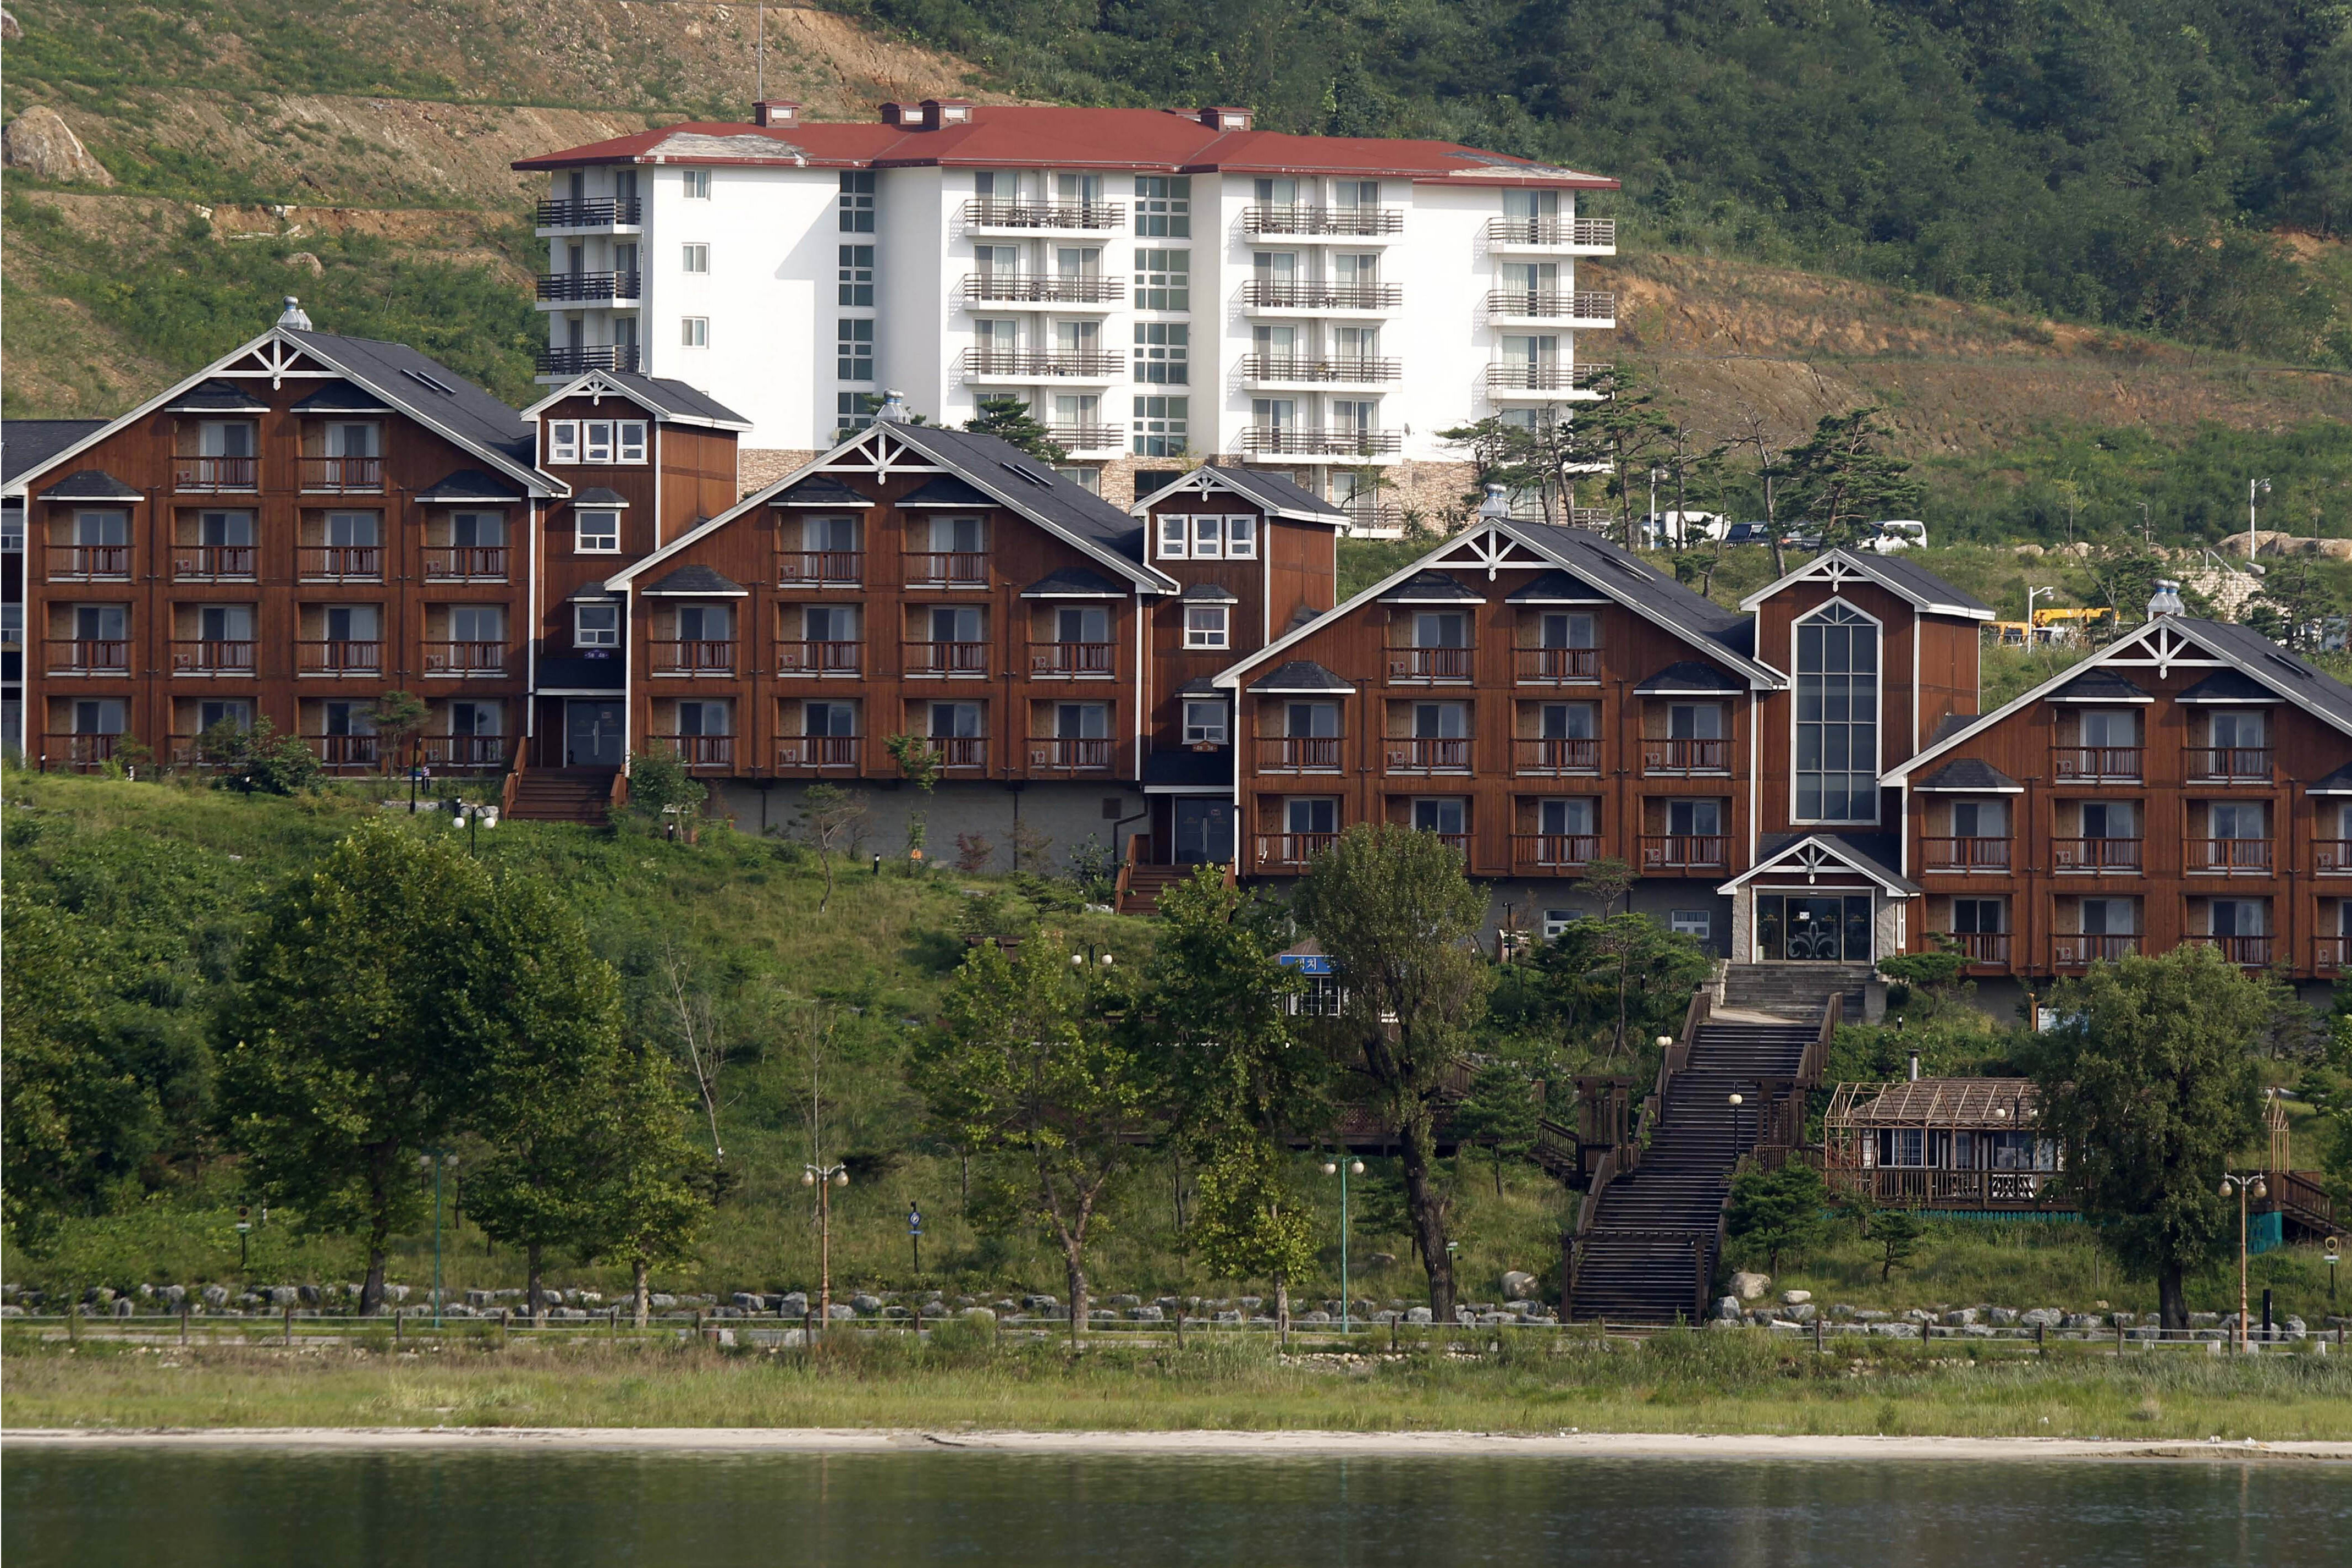 Kim orders Souths buildings at resort in North be destroyed